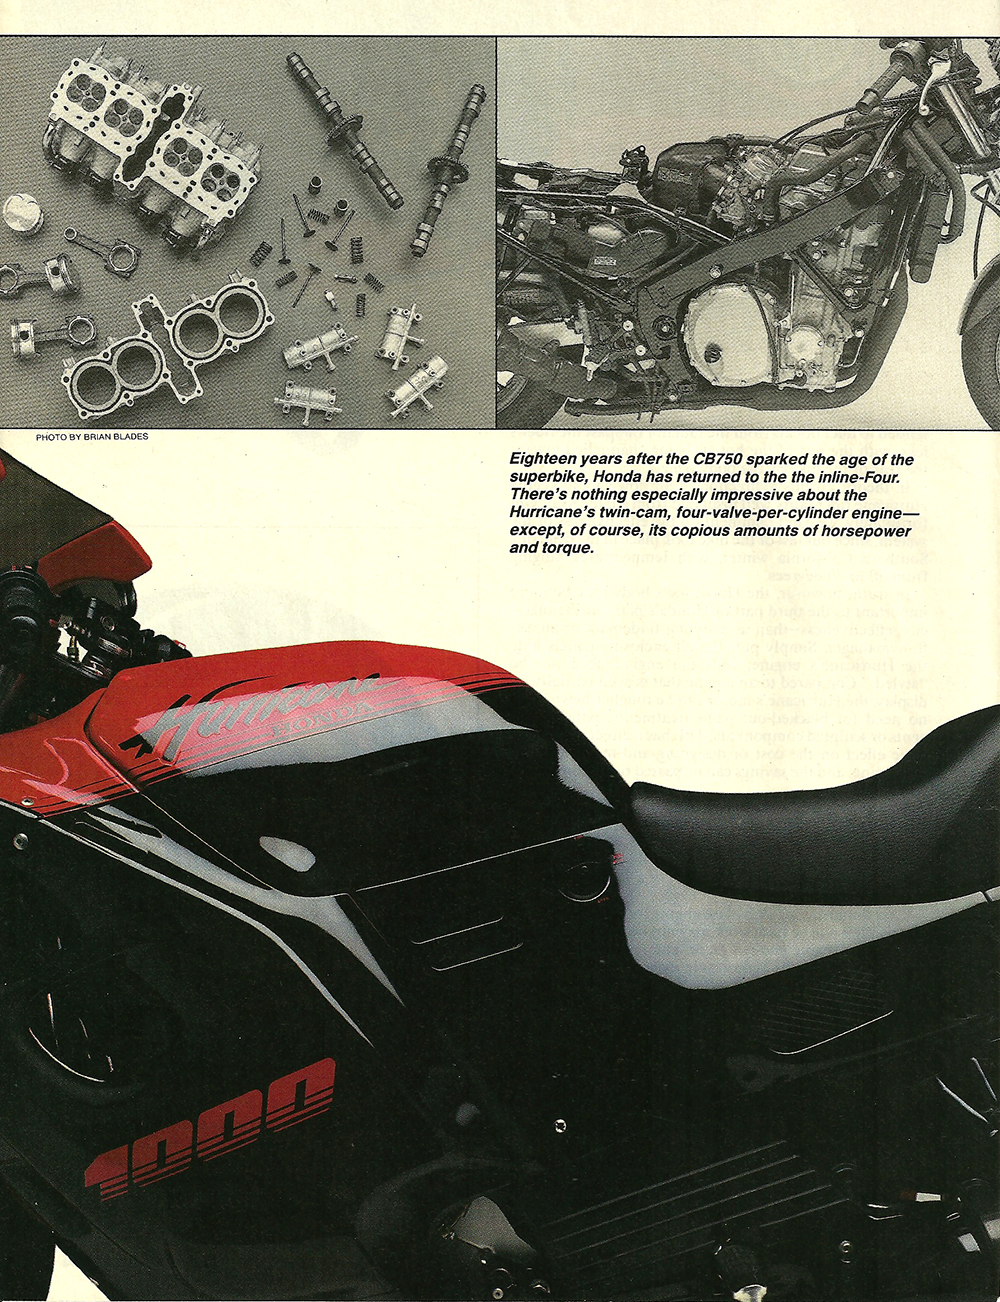 1987 Honda Hurricane 1000 road test 05.jpg